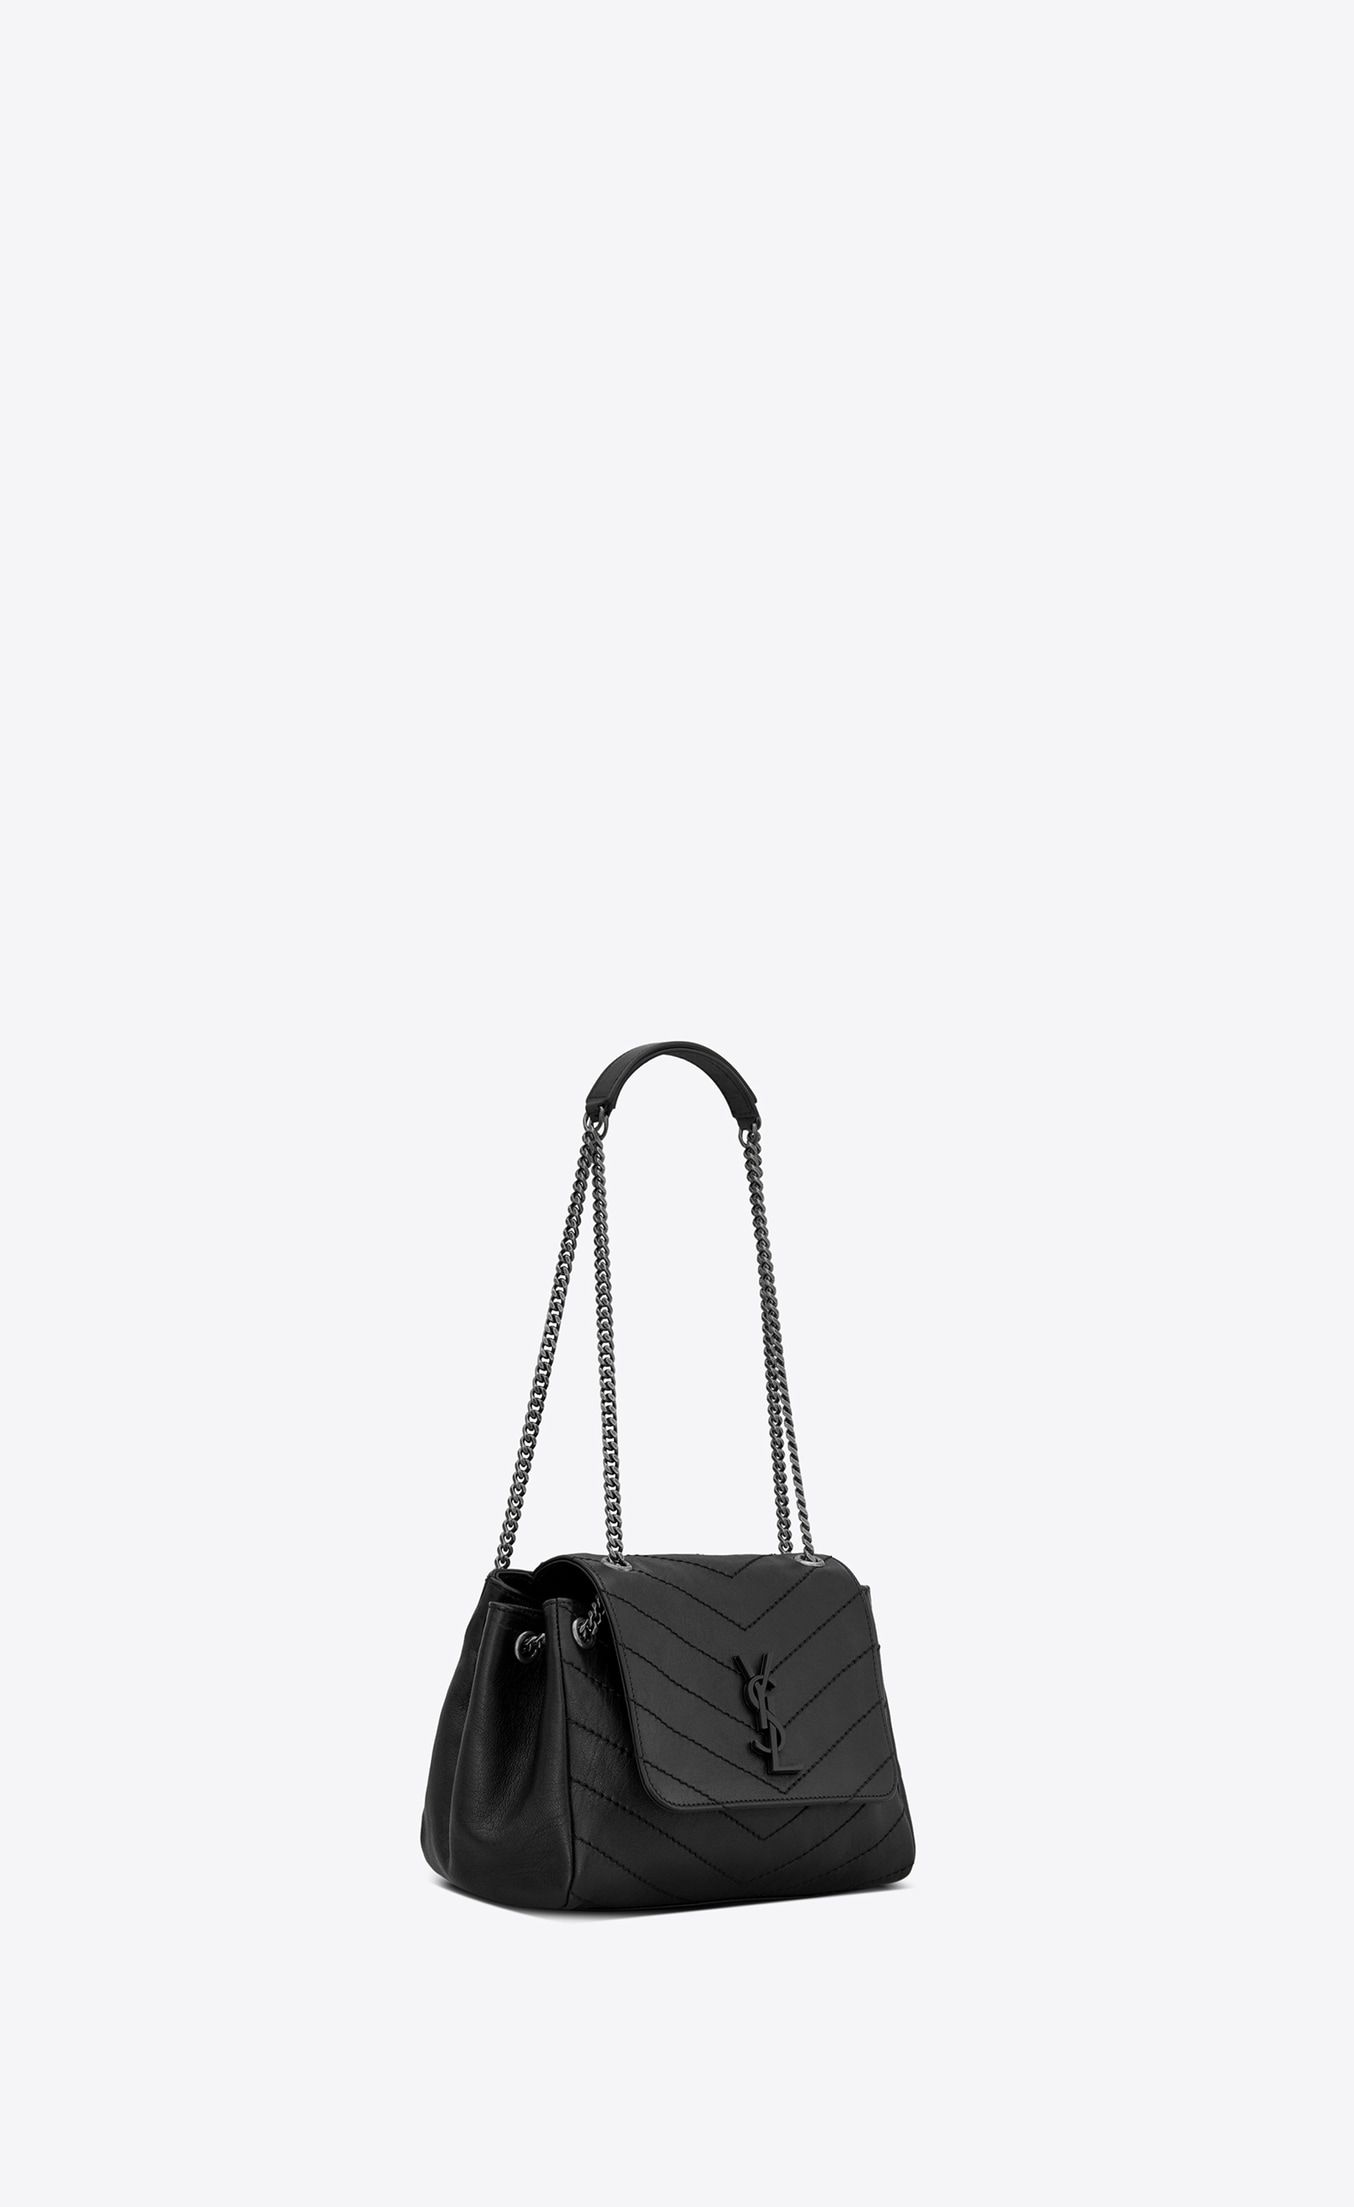 d2383ff7e45625 NOLITA Small bag in vintage leather in 2019 | Fashion | Vintage ...